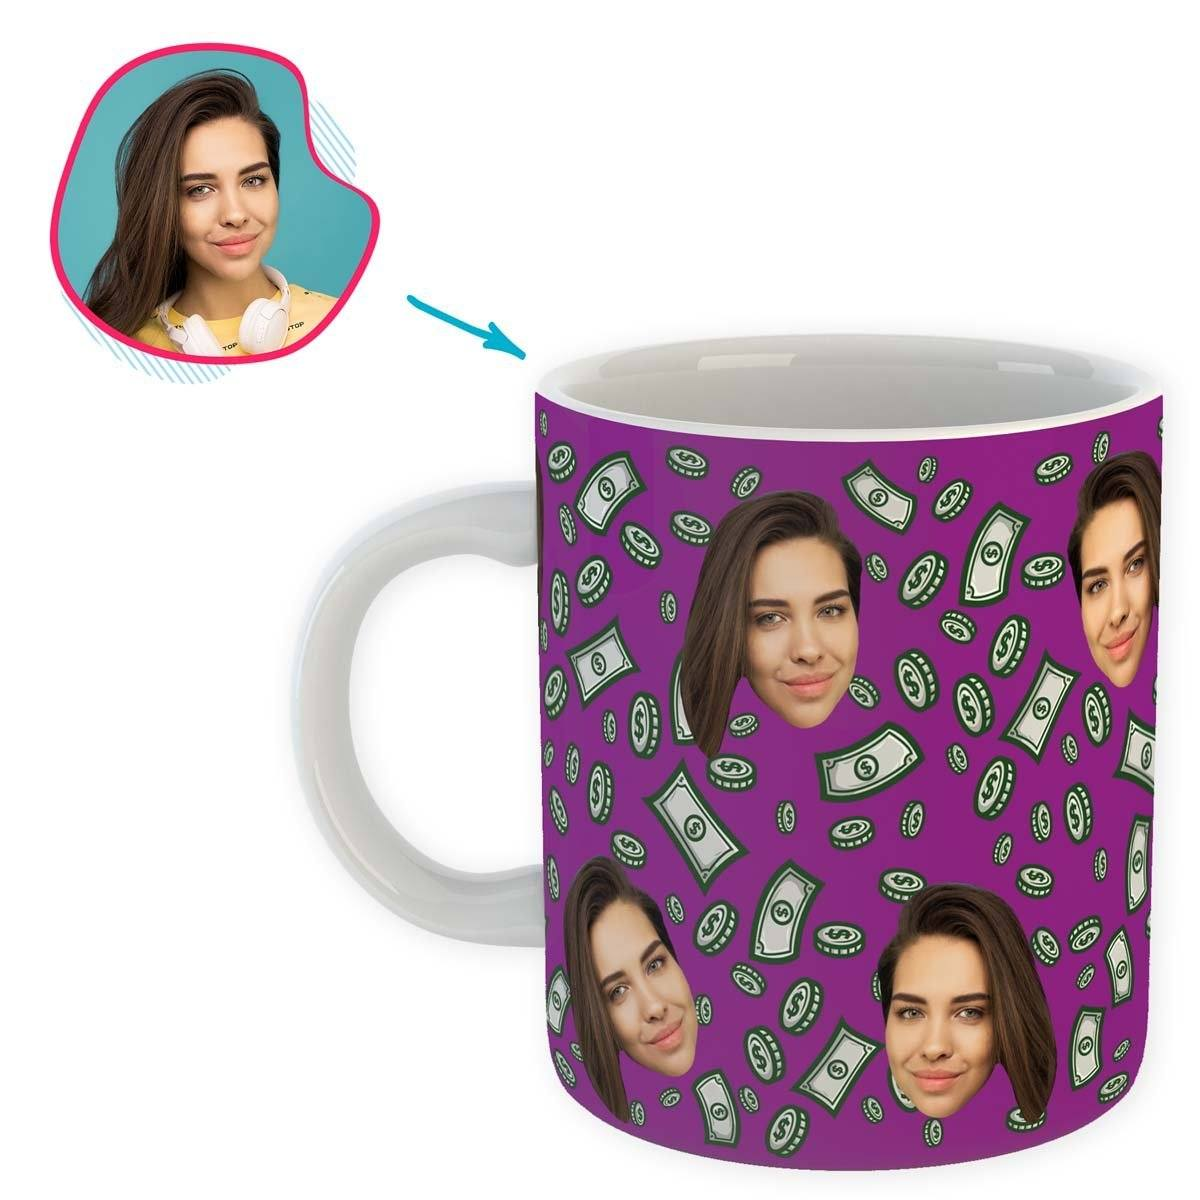 purple Money mug personalized with photo of face printed on it